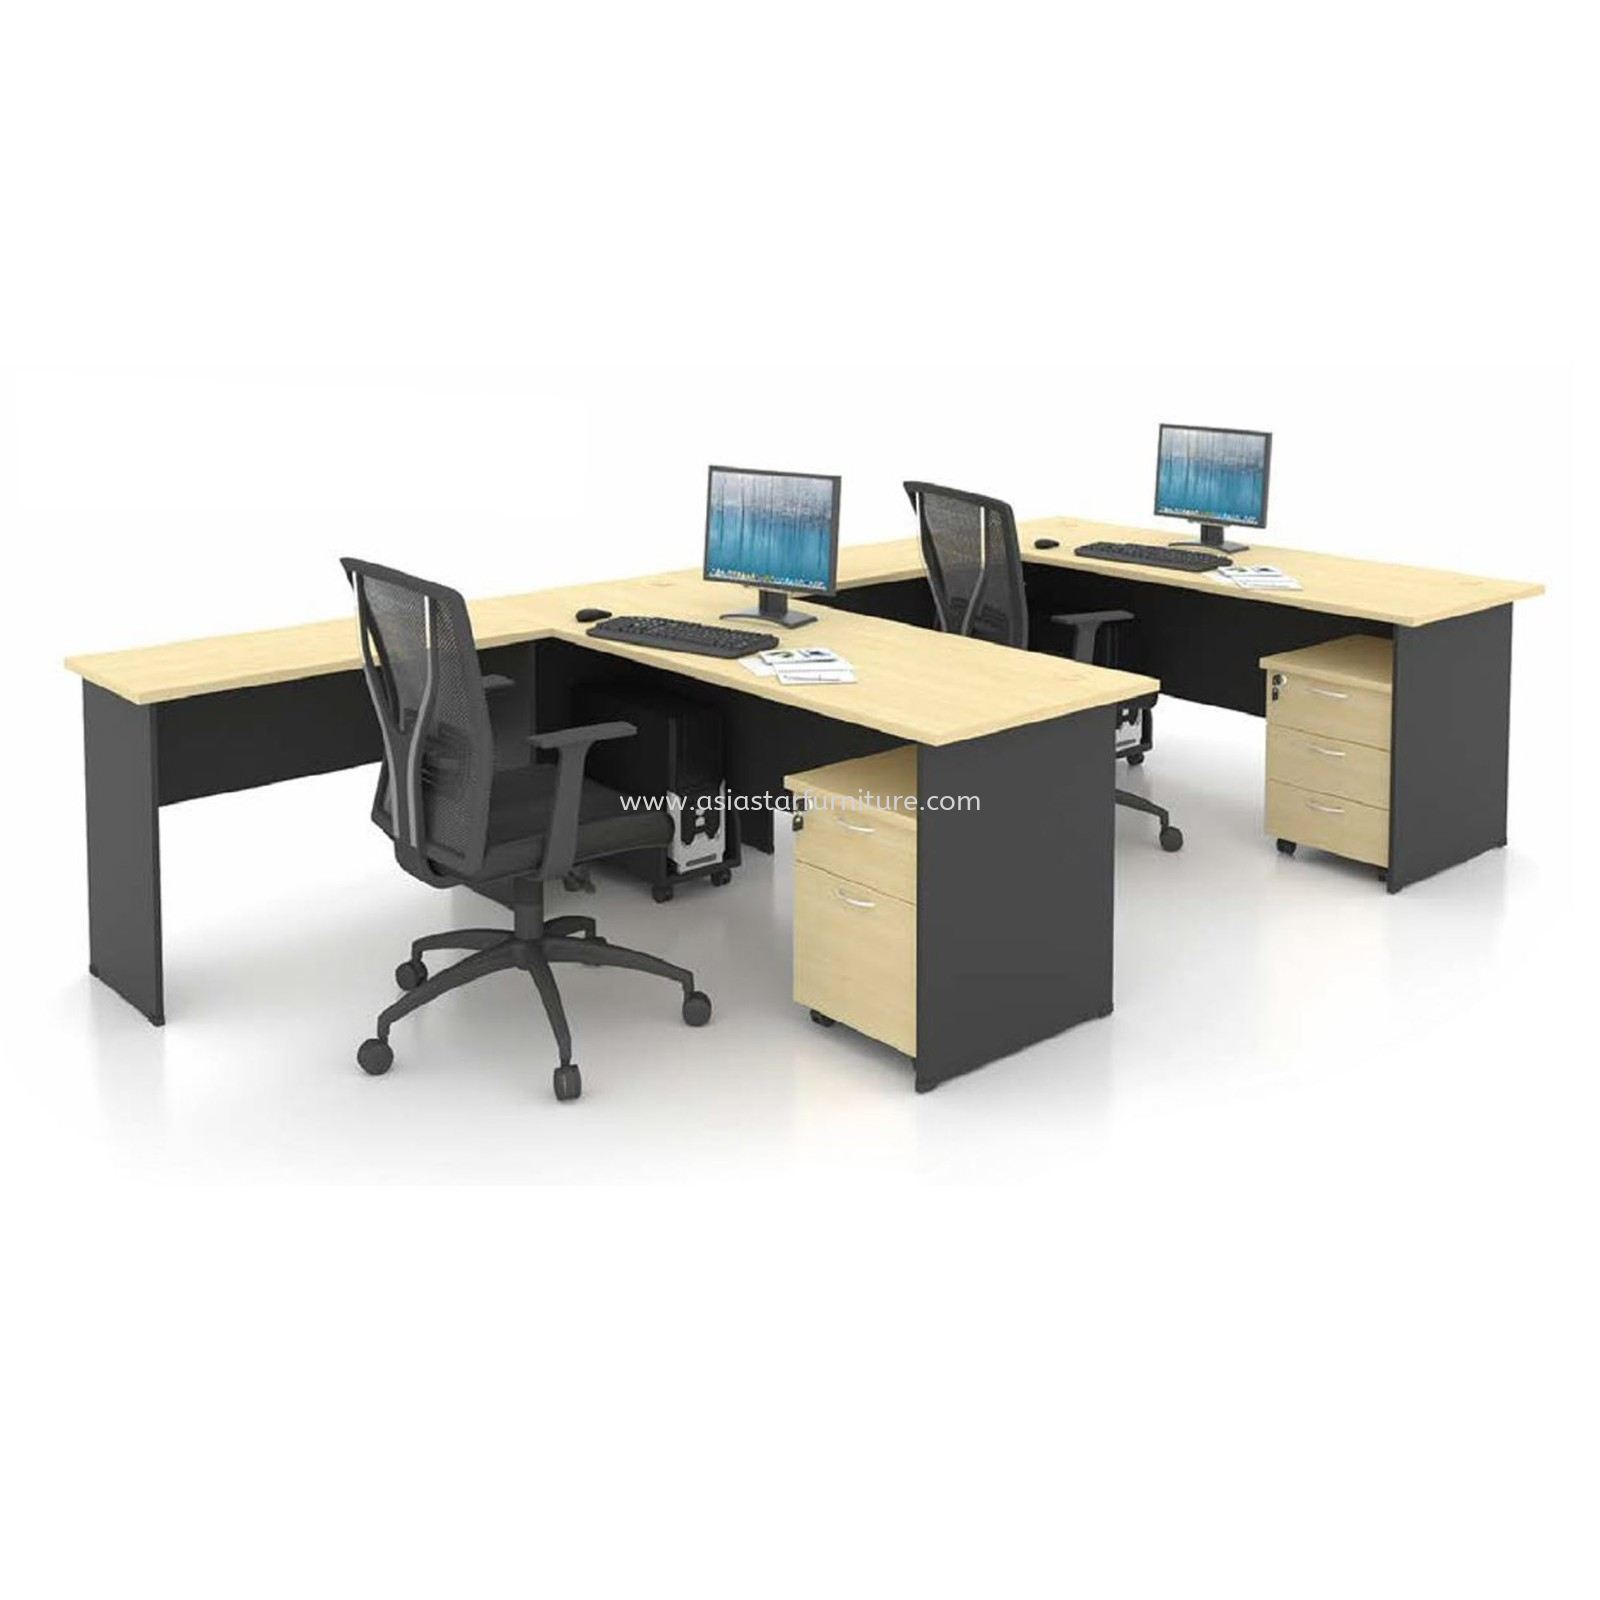 5' OFFICE TABLE | COMPUTER TABLE | STUDY TABLE C/W SIDE TABLE AND DRAWER 1D1F SET - office table Bukit Jalil | office table Taman Sea | office table Kuchai Lama | office table Old Klang Road